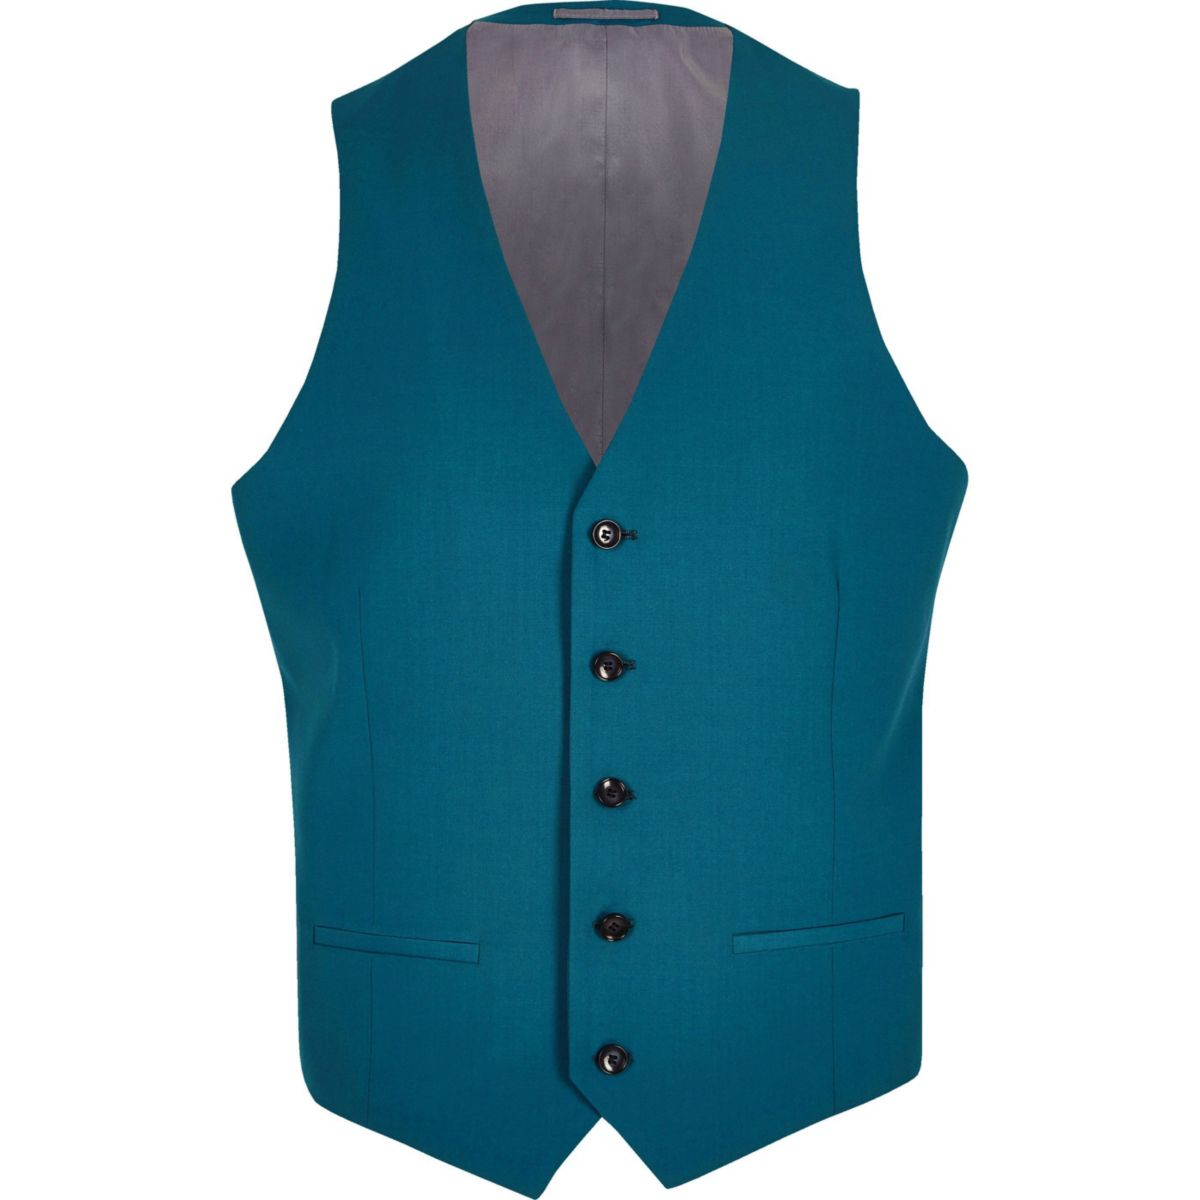 Teal blue suit vest